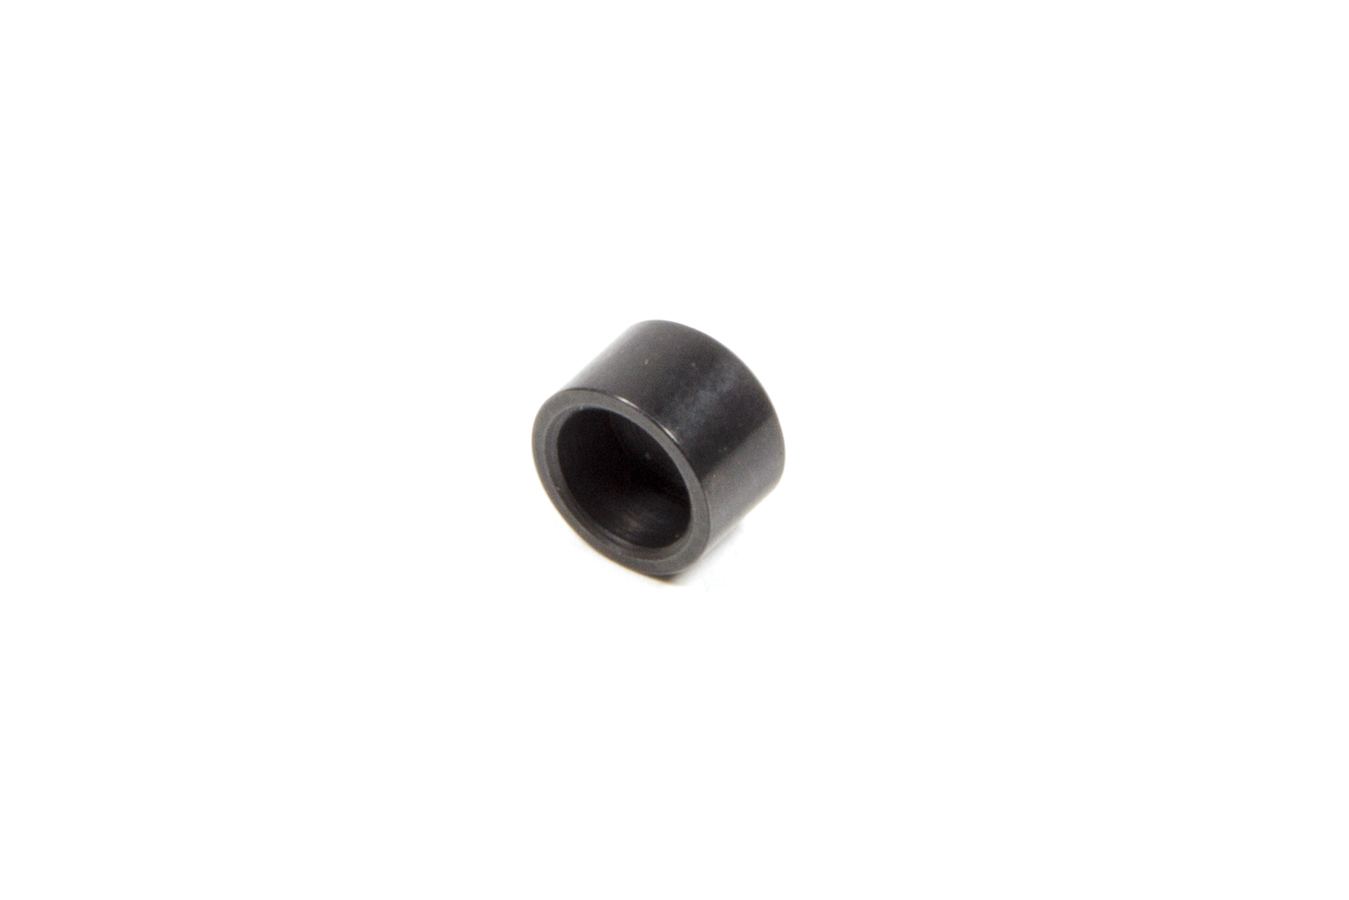 Ferrea C10005 Valve Lash Cap, 0.160 in Thick, 7 mm Valve Stems, Steel, Black Oxide, Each